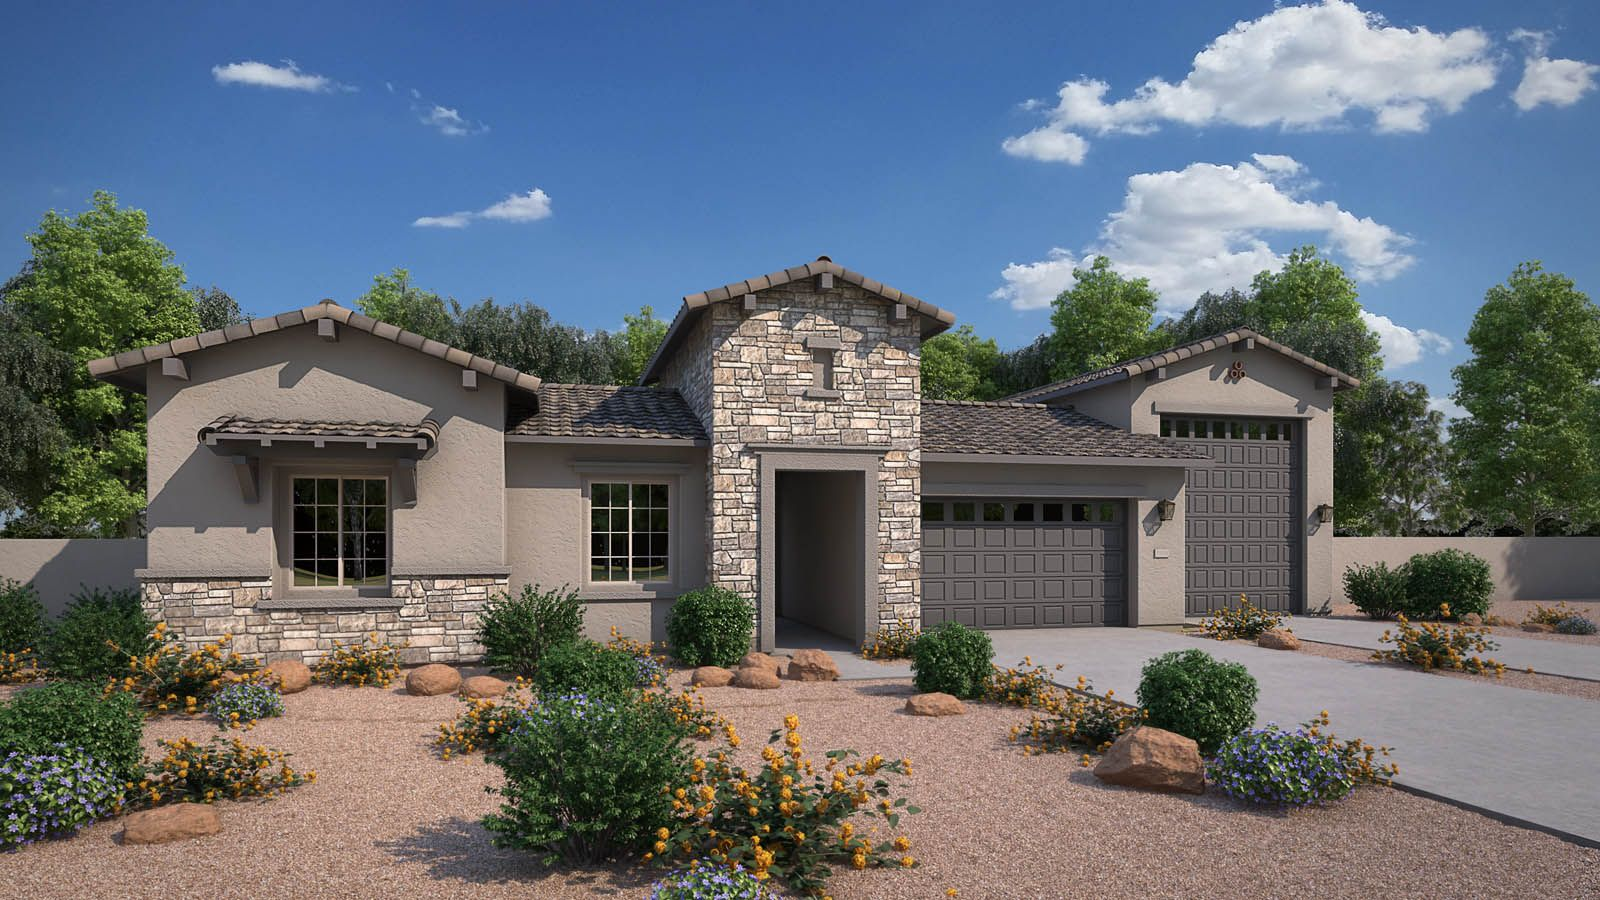 Exterior:Elevation C Rendering - Rural Mediterranean